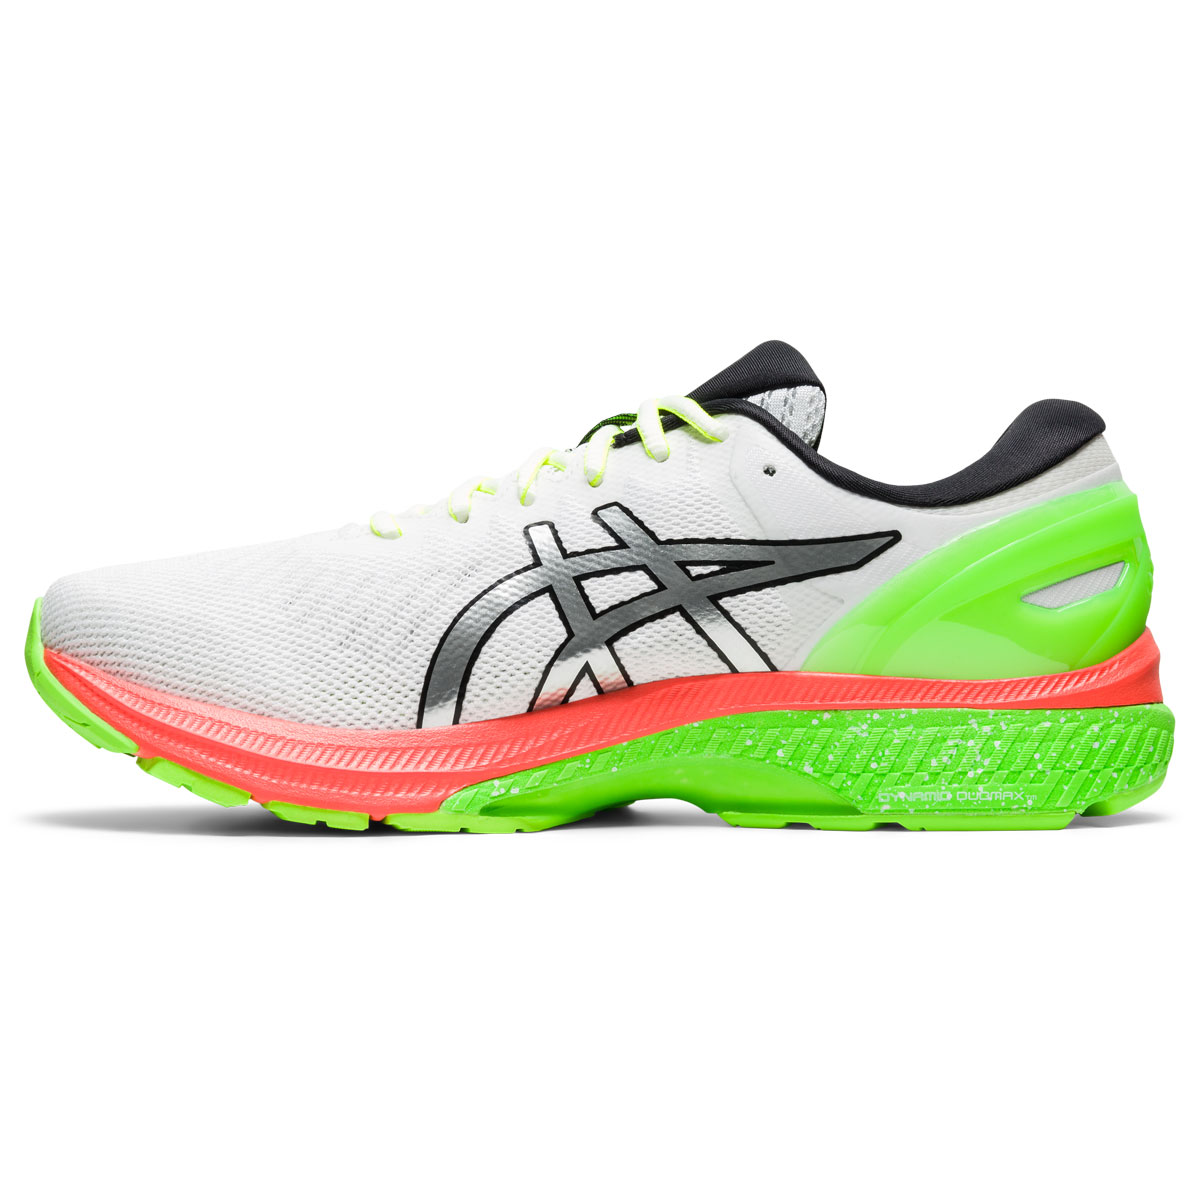 Men's Asics GEL-Kayano 27 Lite-Show Running Shoe - Color: White/Pure Silv (Regular Width) - Size: 6, White/Pure Silver, large, image 2